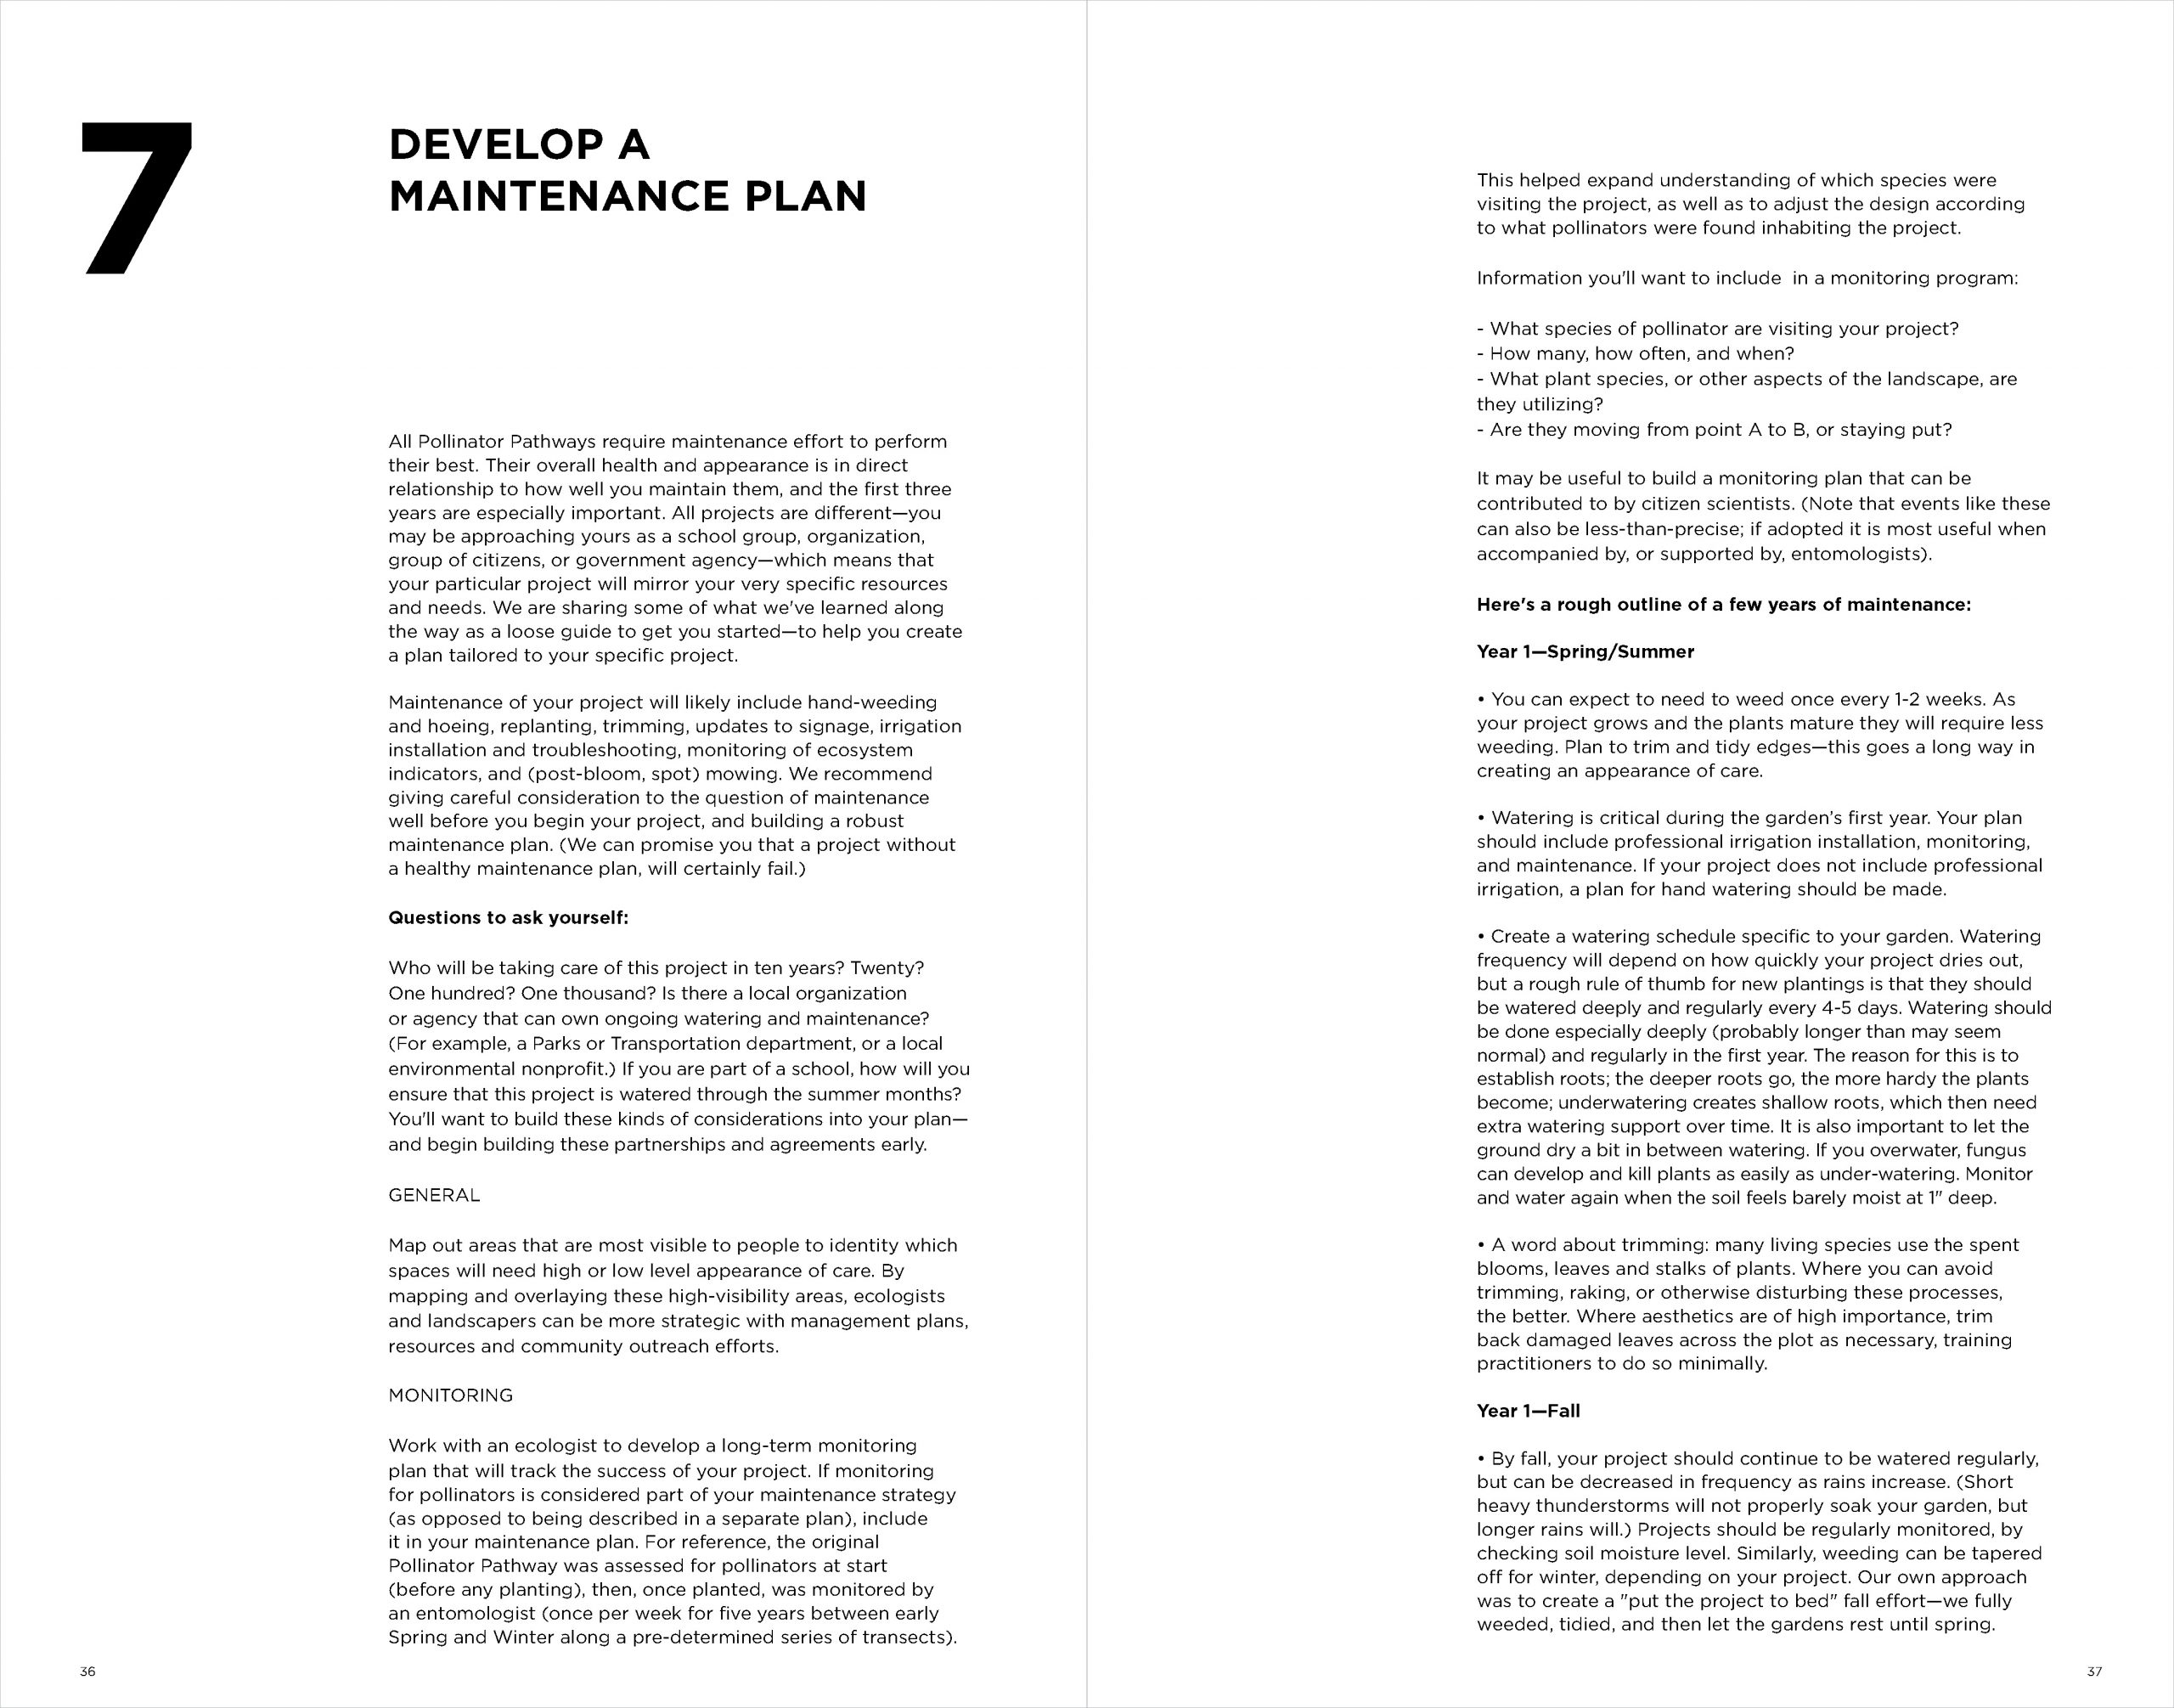 POLLINATOR-PATHWAY-TOOLKIT_Page_21